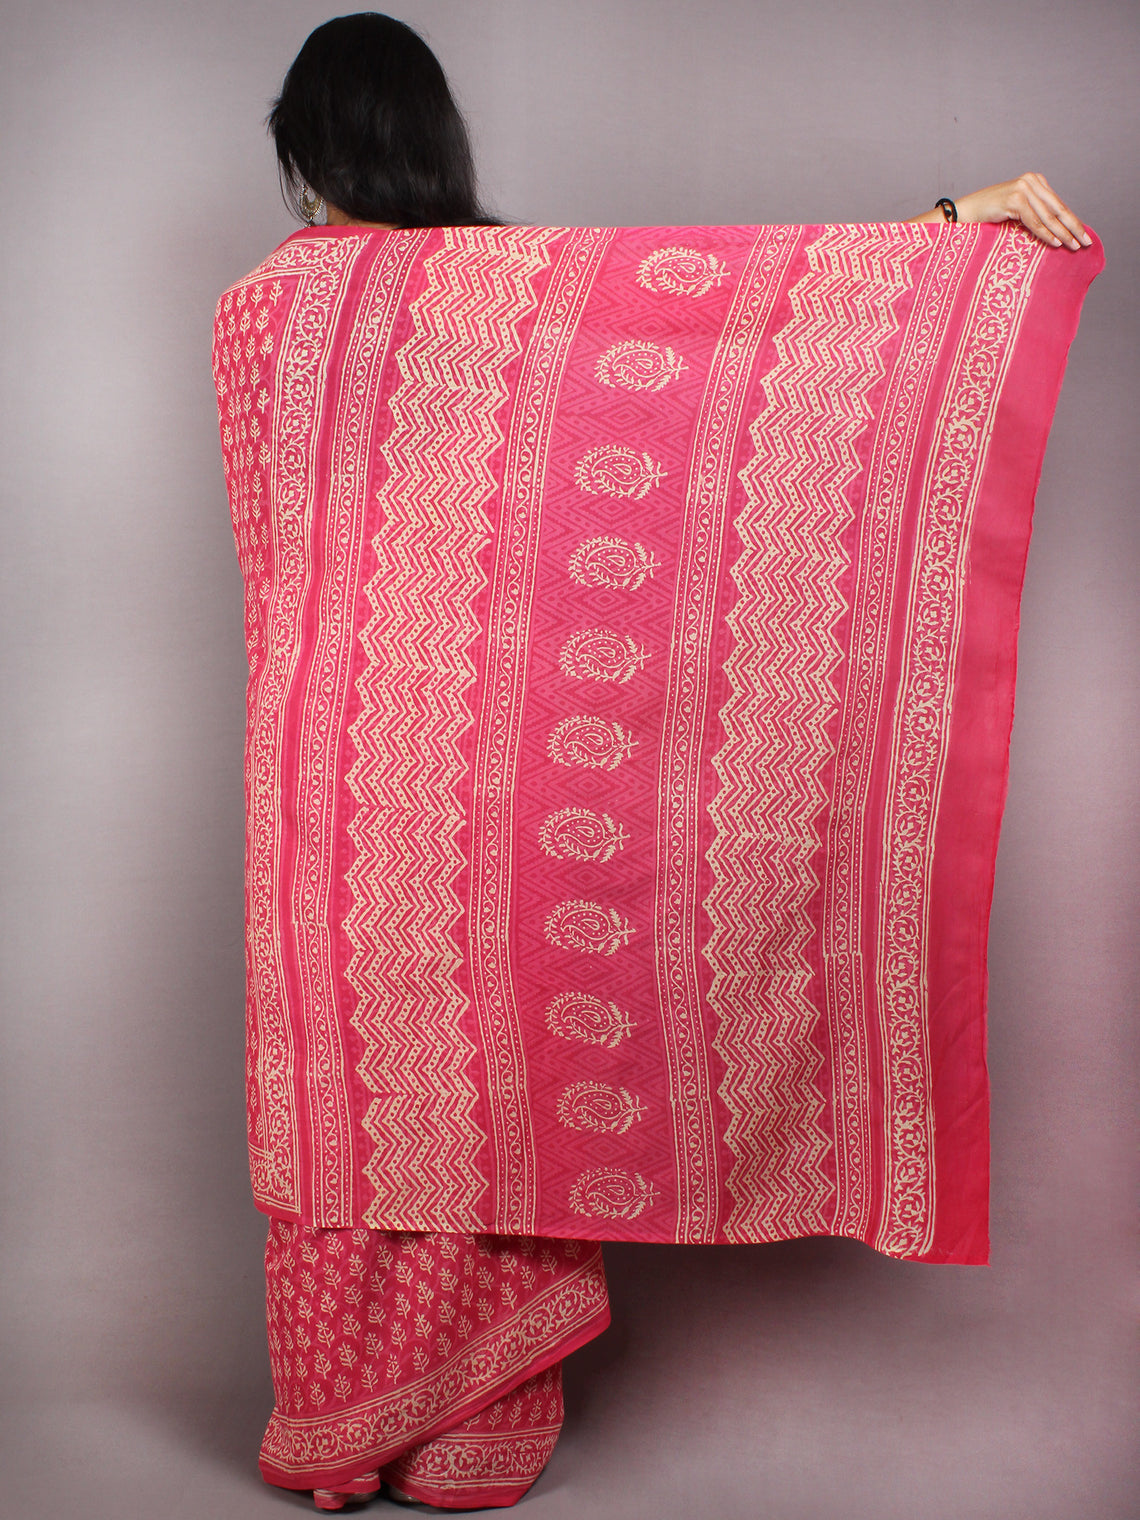 Pink Beige Hand Block Printed Cotton Saree in Natural Colors - S03170577